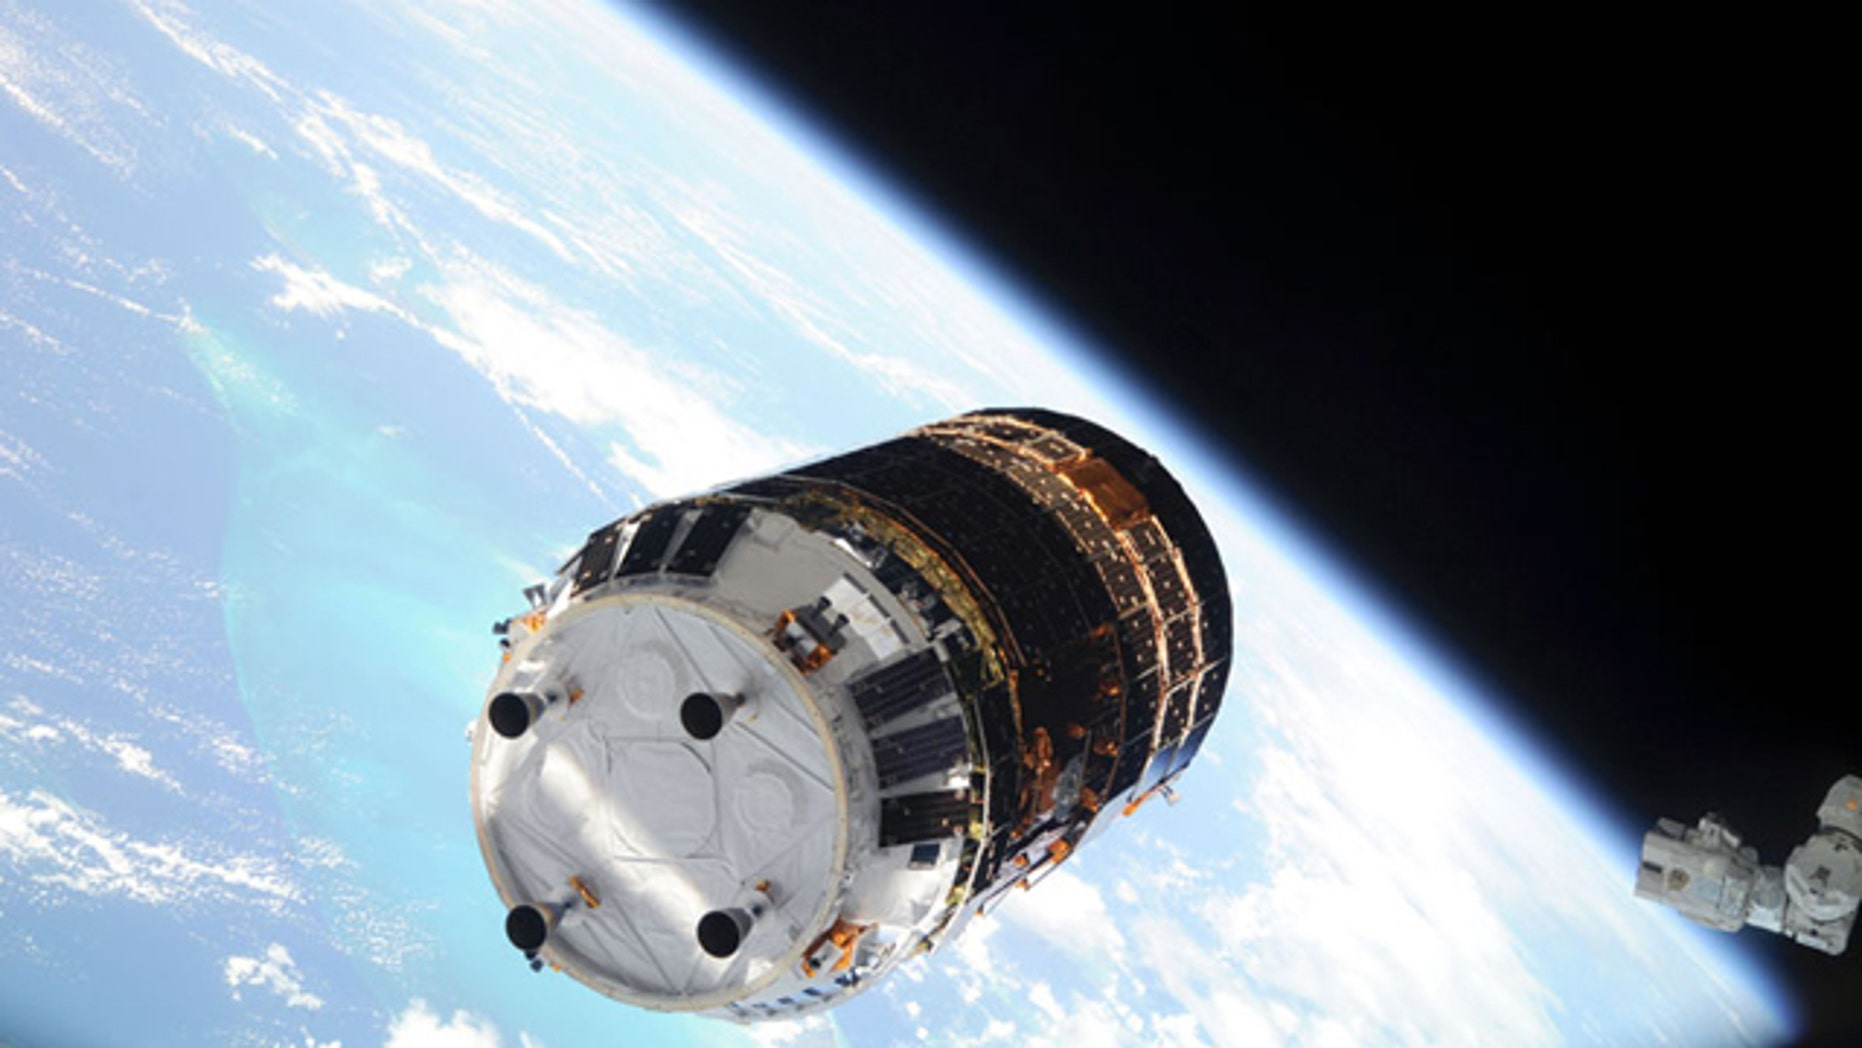 Backdropped by Earth's horizon and the blackness of space, the first unpiloted Japanese H-2 Transfer Vehicle (HTV) approaches the International Space Station on Sept. 17, 2009.